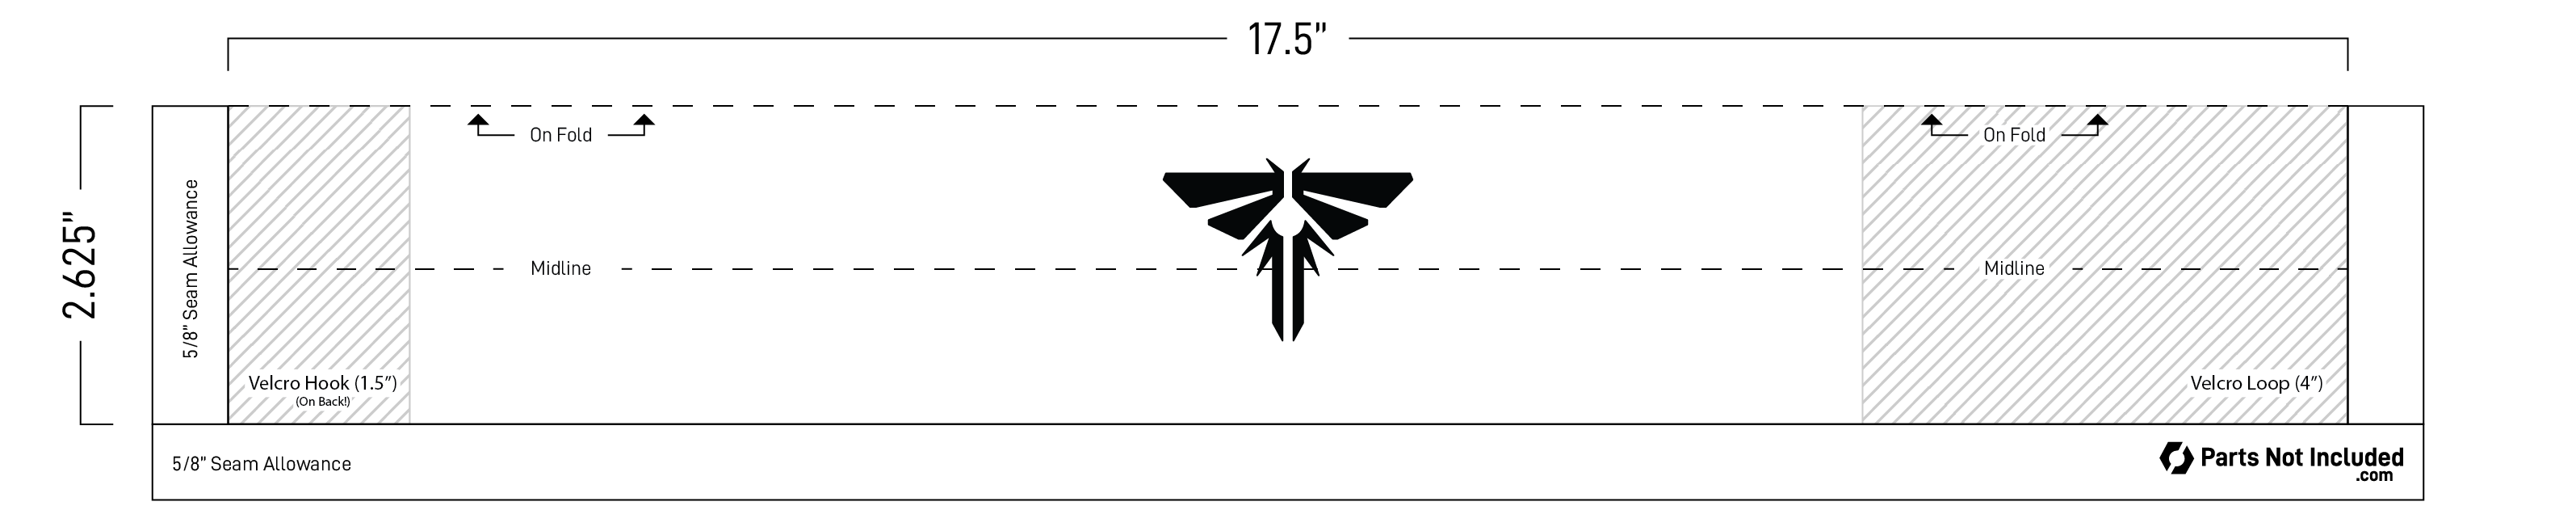 Sewing pattern for The Last of Us Firefly armband